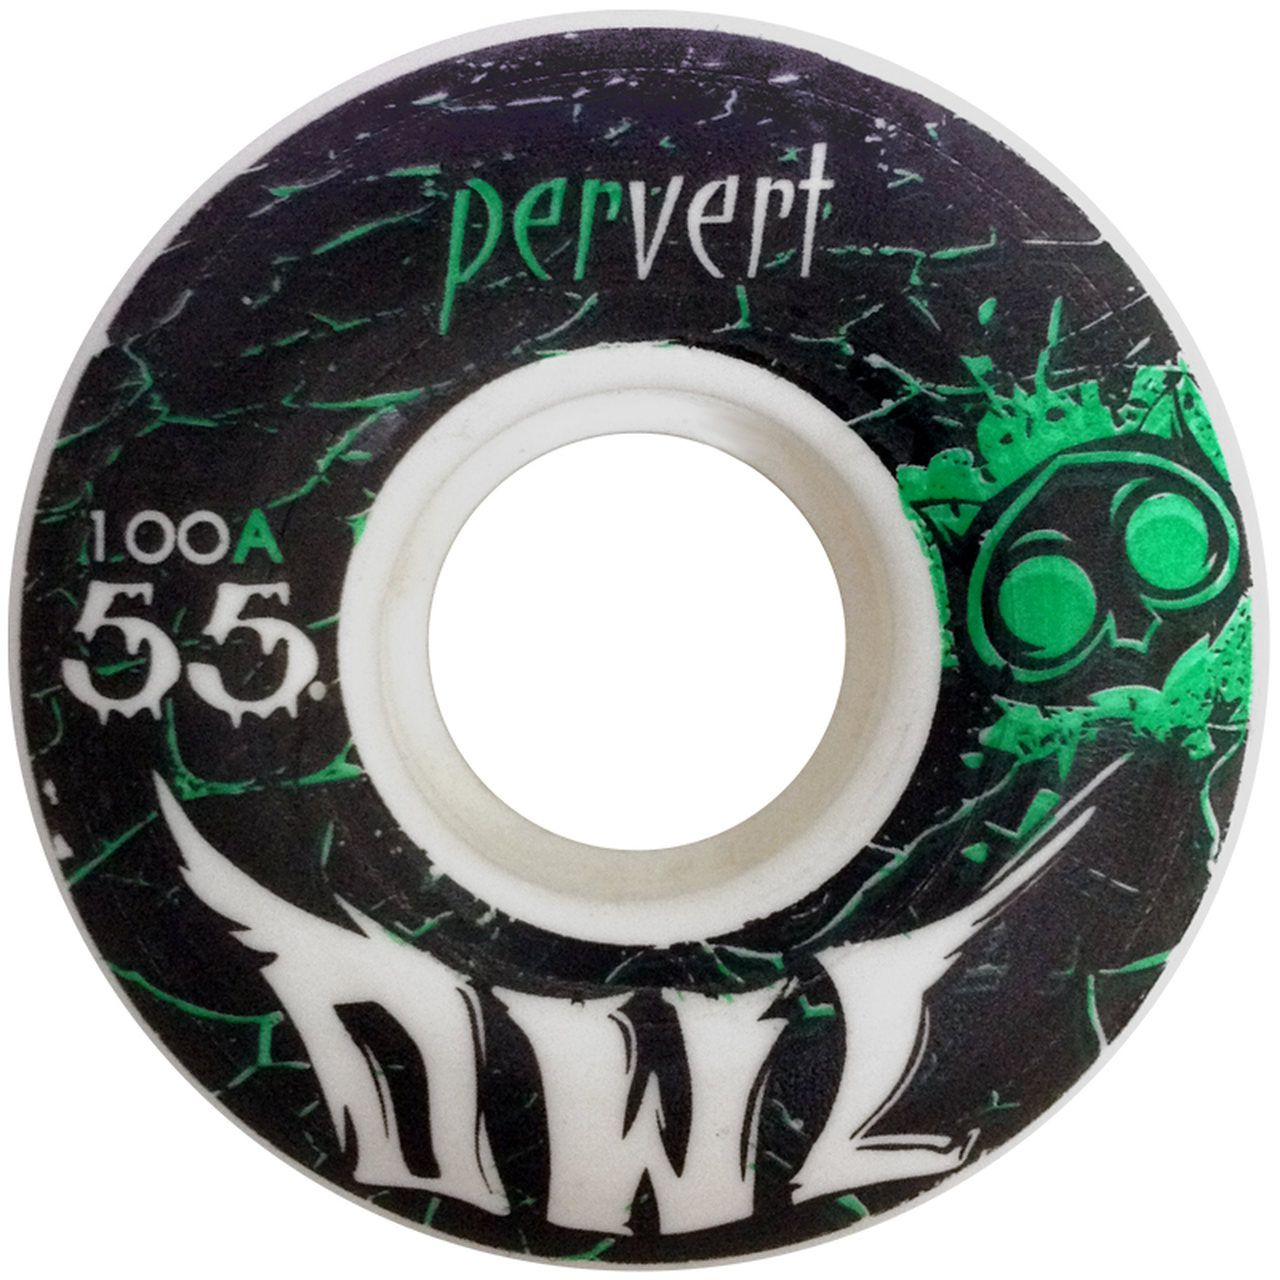 Roda De Skate Owl Sports Pervert 55mm